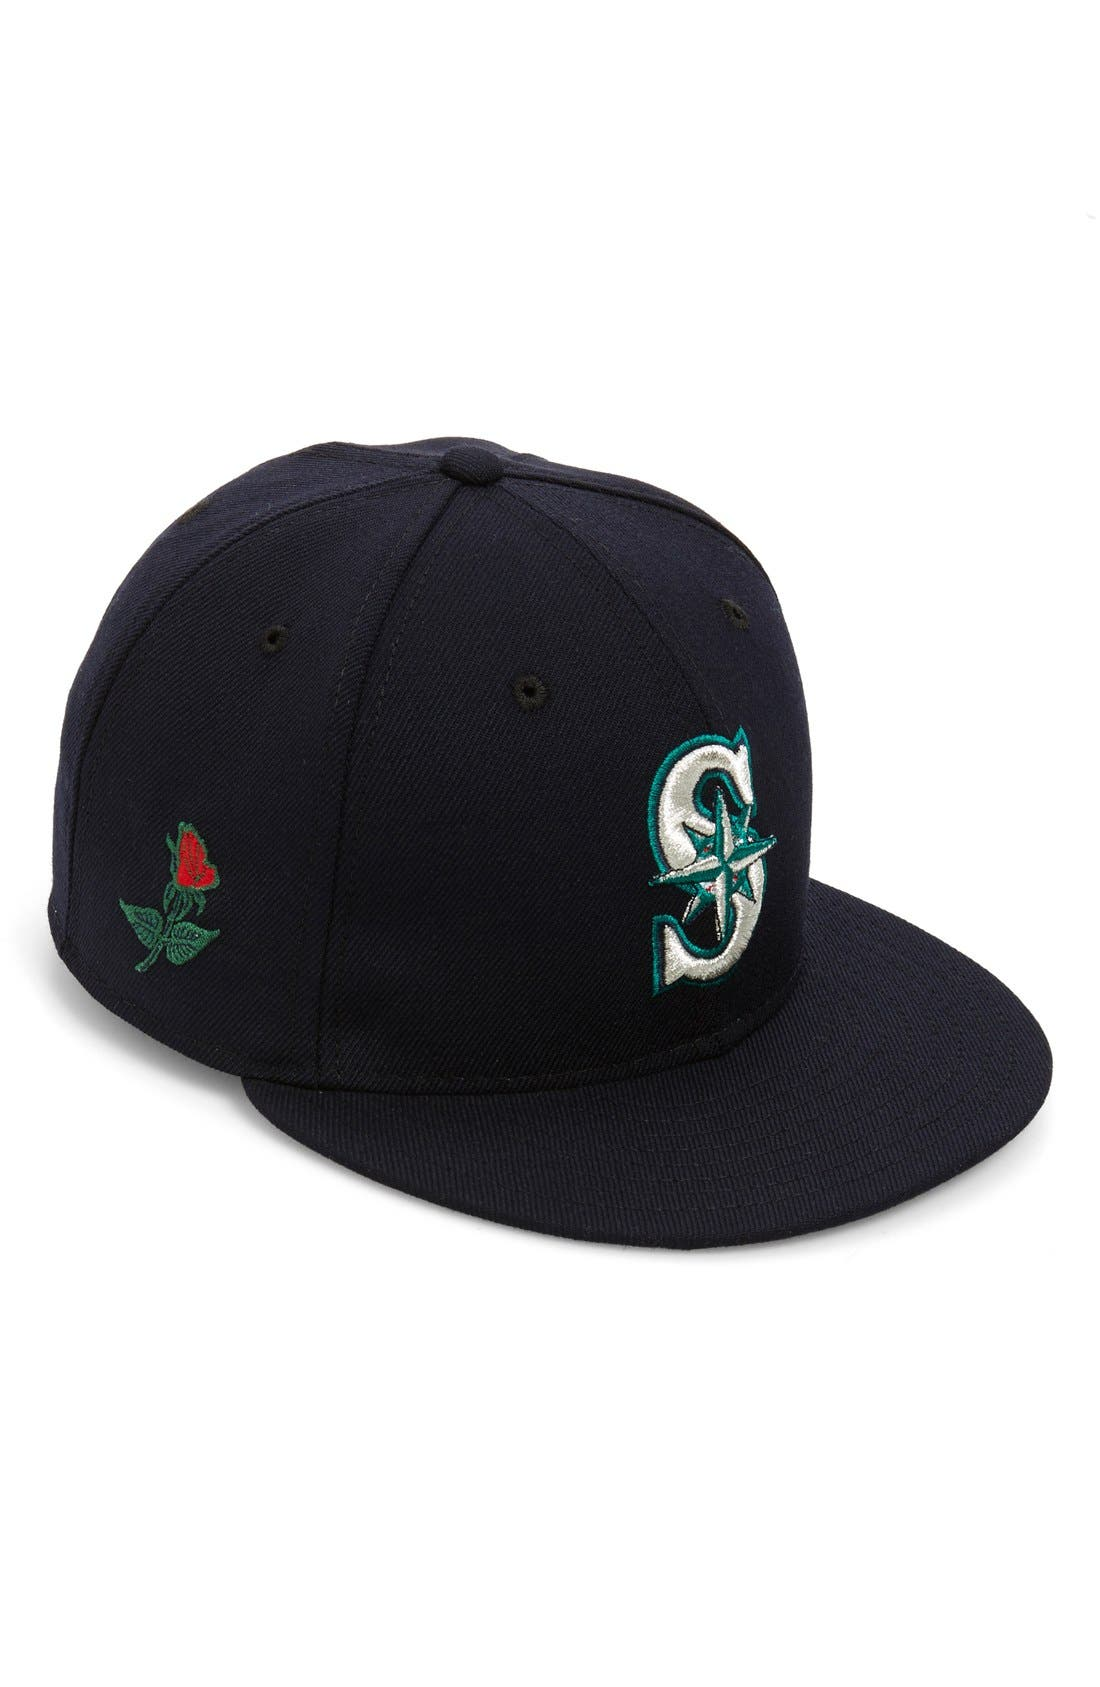 77782301695 ... cheapest 59fifty seattle mariners baseball cap 1a5b1 26f5f